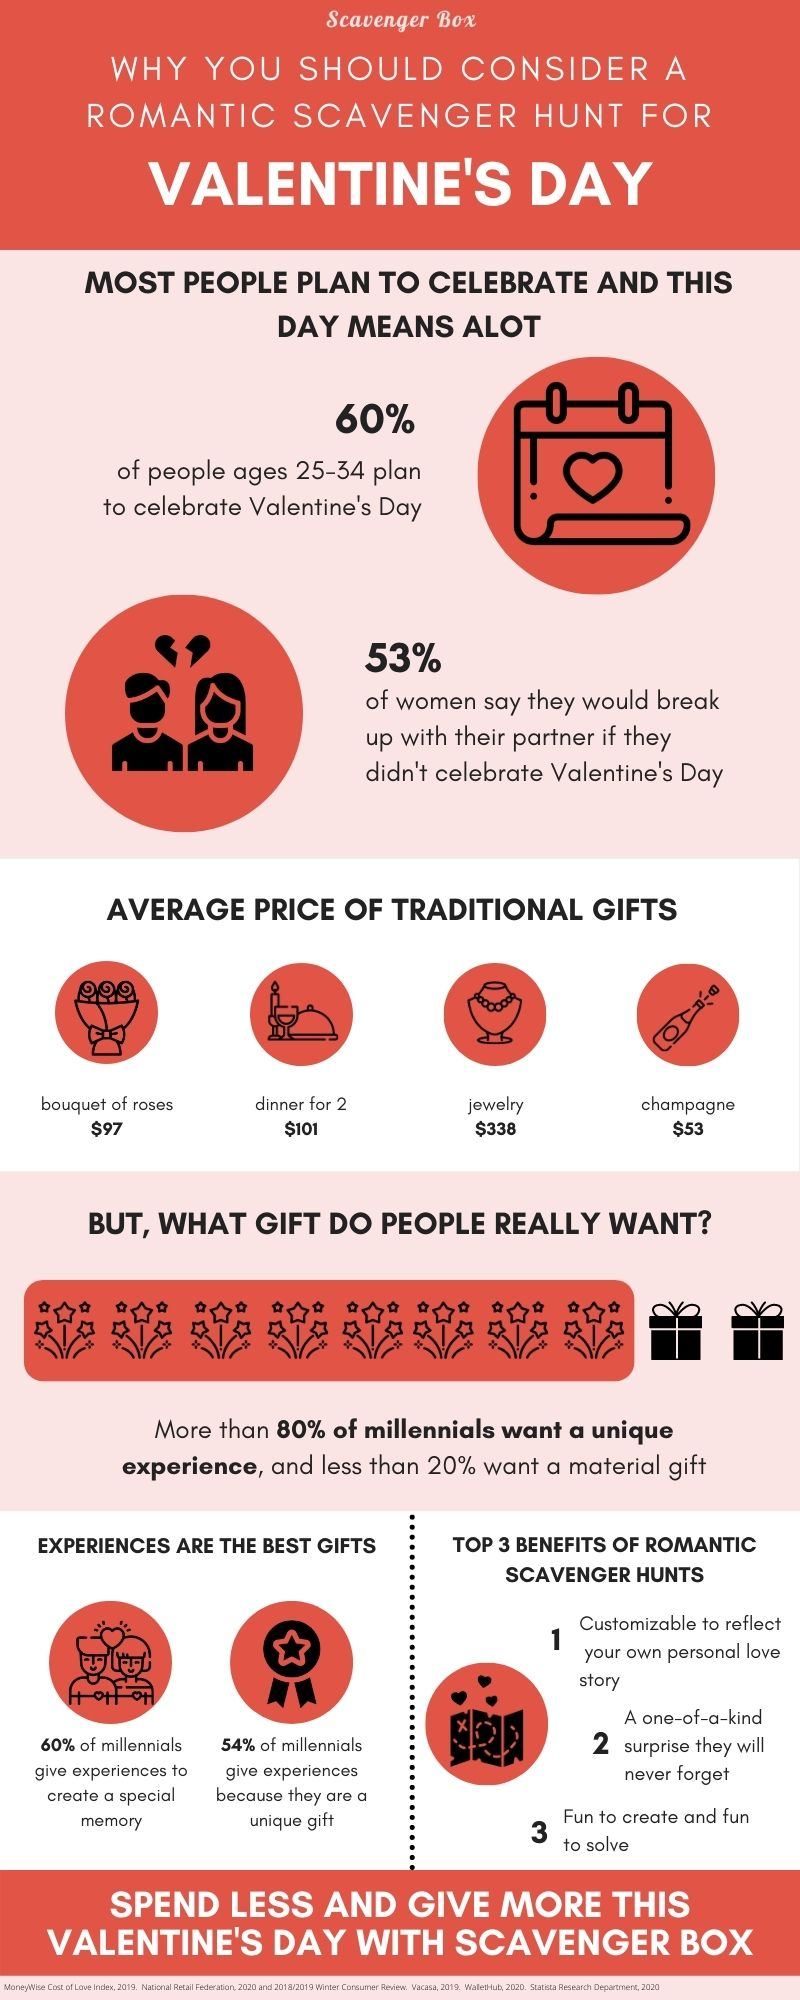 why you should consider a romantic scavenger hunt for Valentine's Day infographic